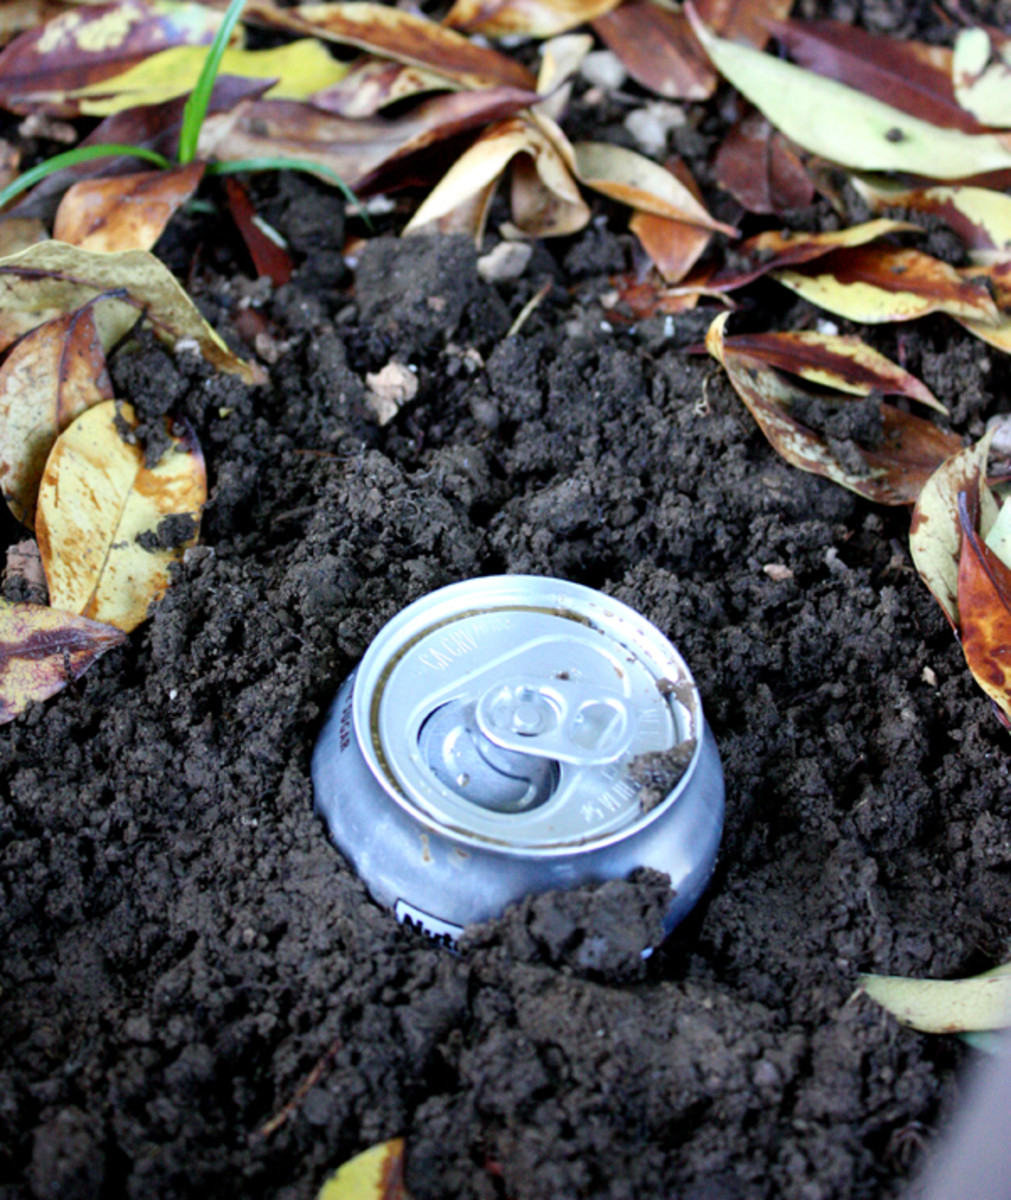 Remember to dig before you start drinking!